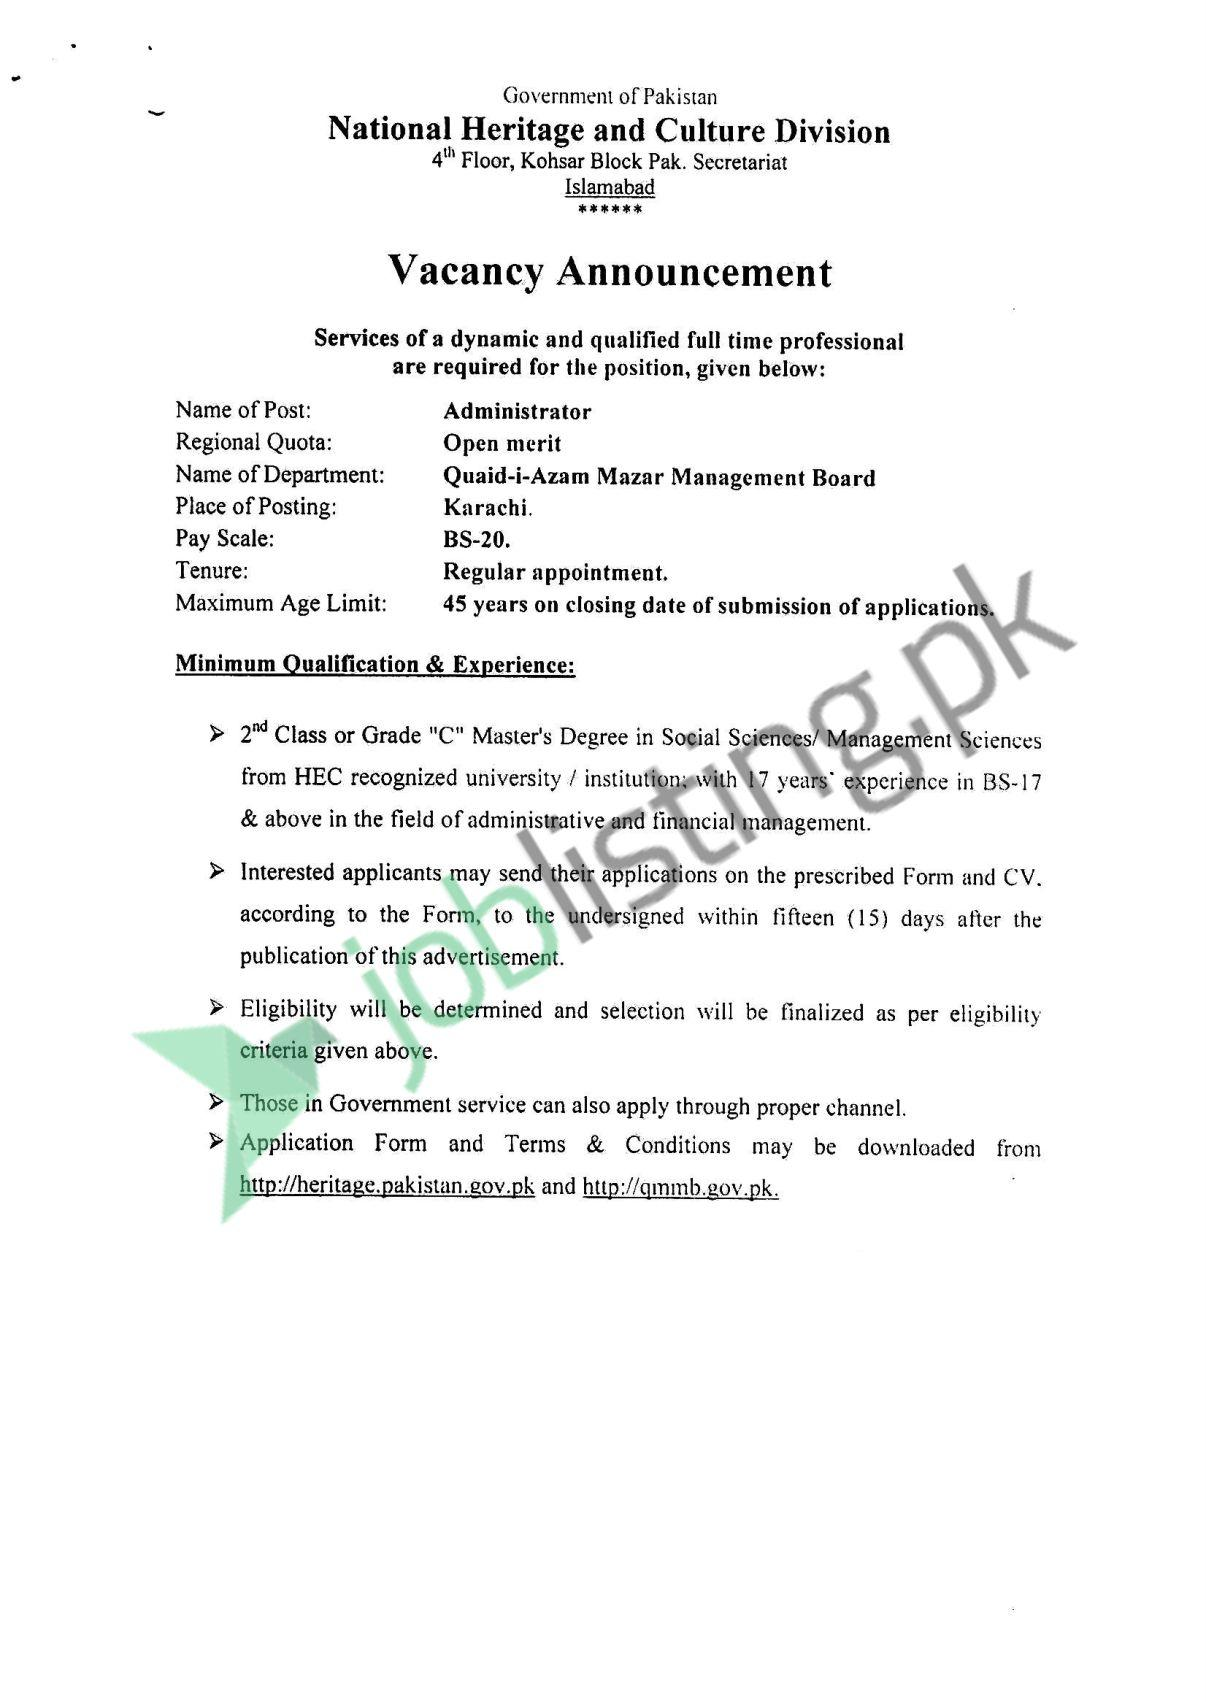 Administrator Jobs National Heritage and Culture Division 2021 Islamabad